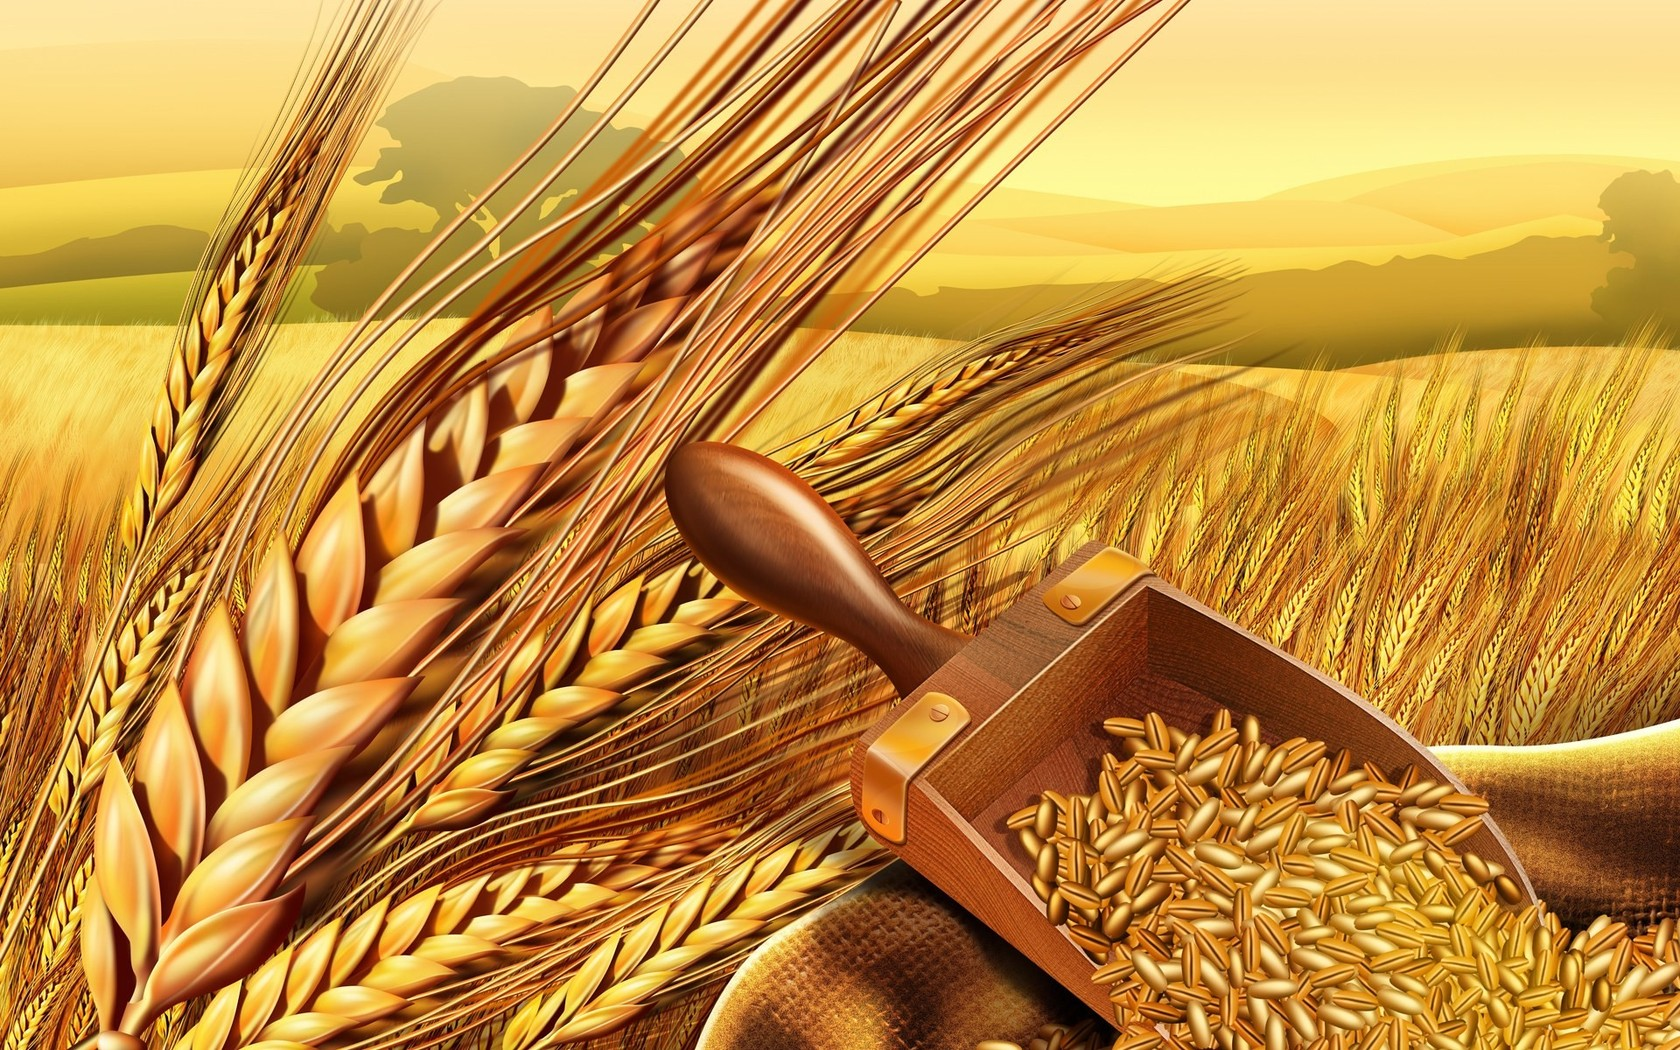 Wheat 1920x1200 wallpaper Wheat 1920x1080 wallpaper Wheat 1680x1050 wallpaper ...